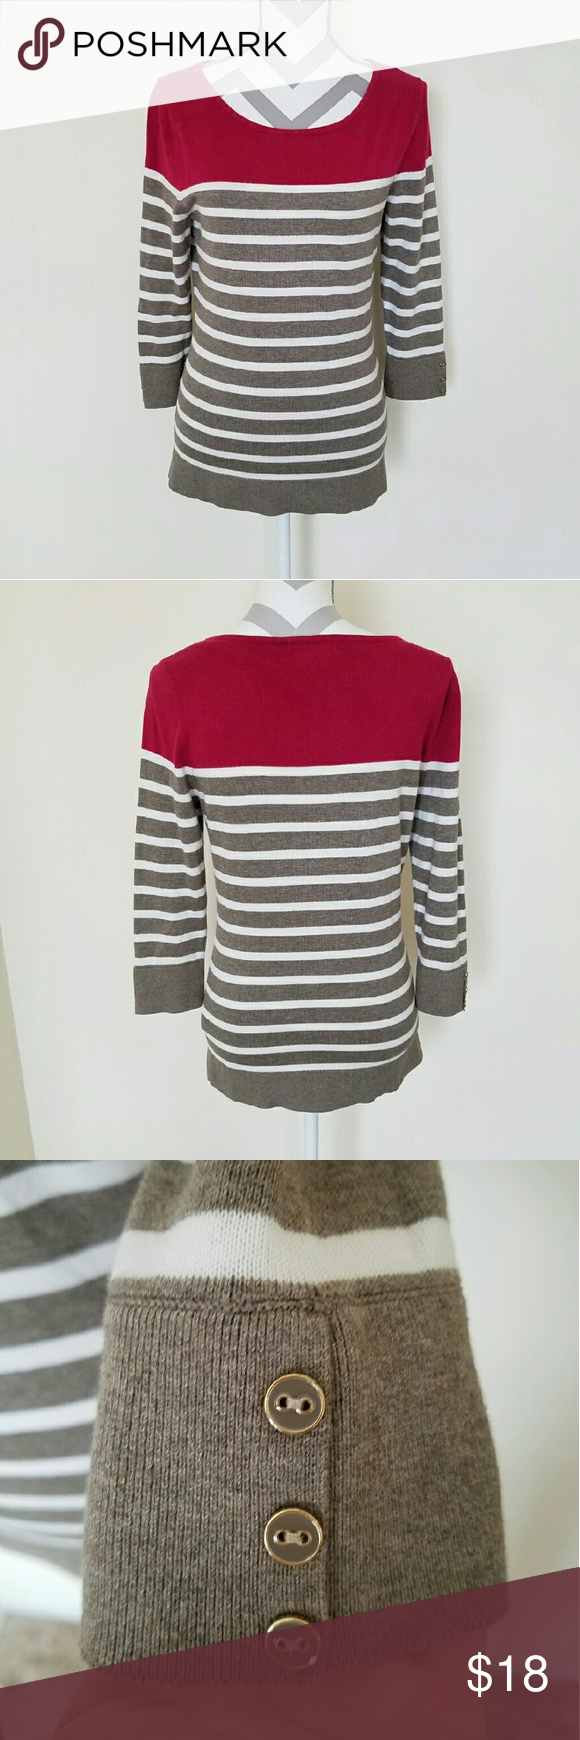 Banana Republic Striped Sweater | Scoop neck, Sleeve and Tans